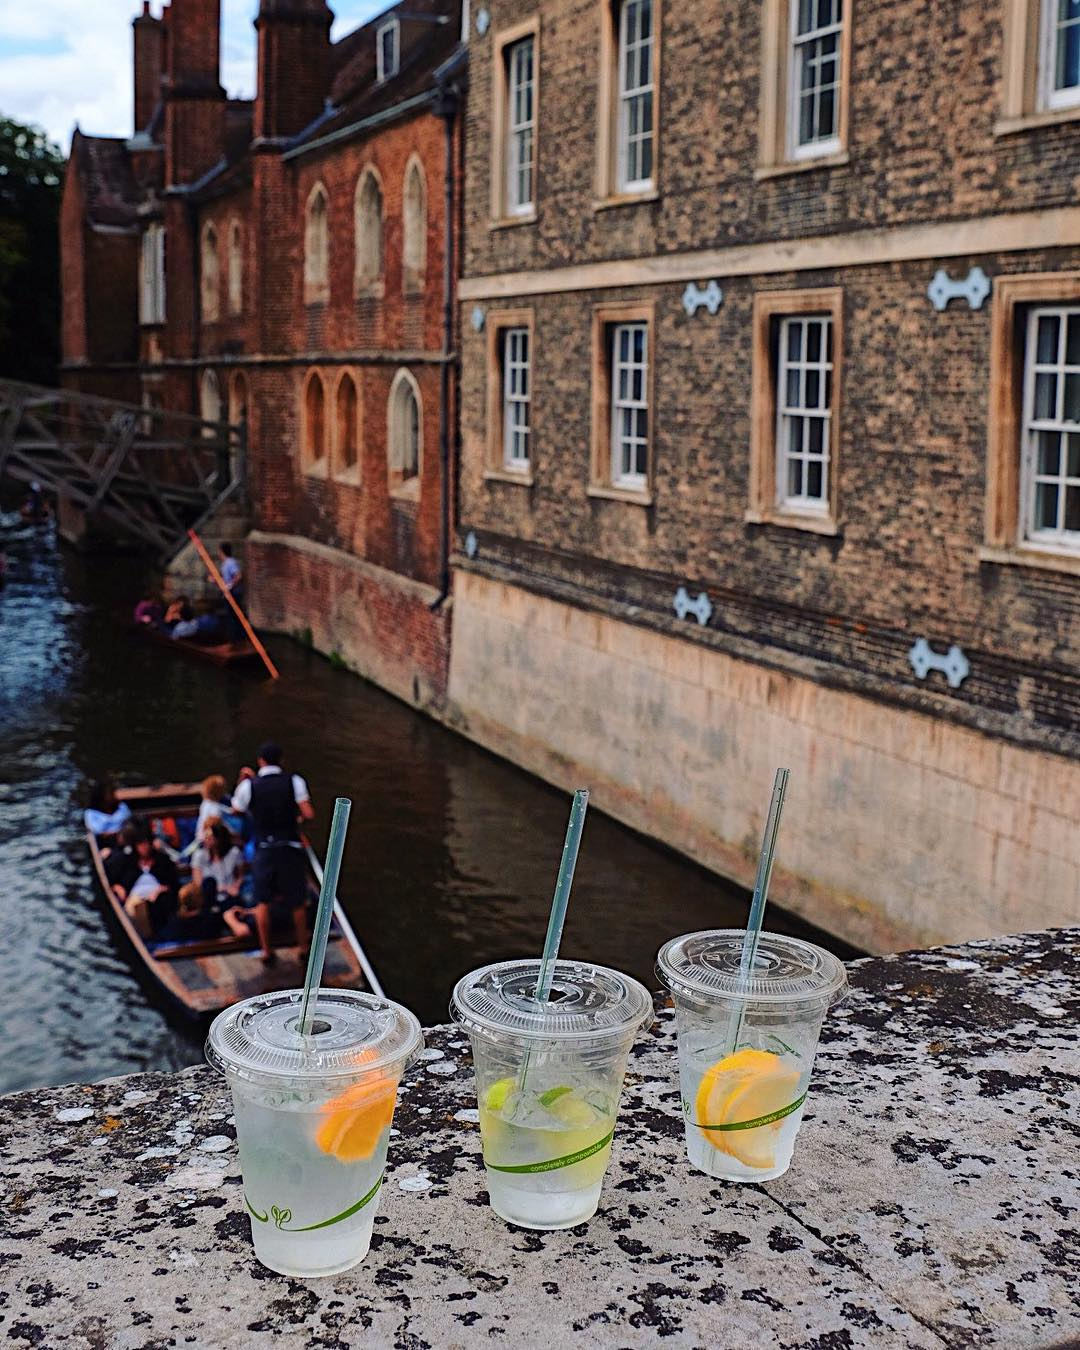 Best Places to Visit in England - Drinking gin and tonic while punting on the canal in Cambridge